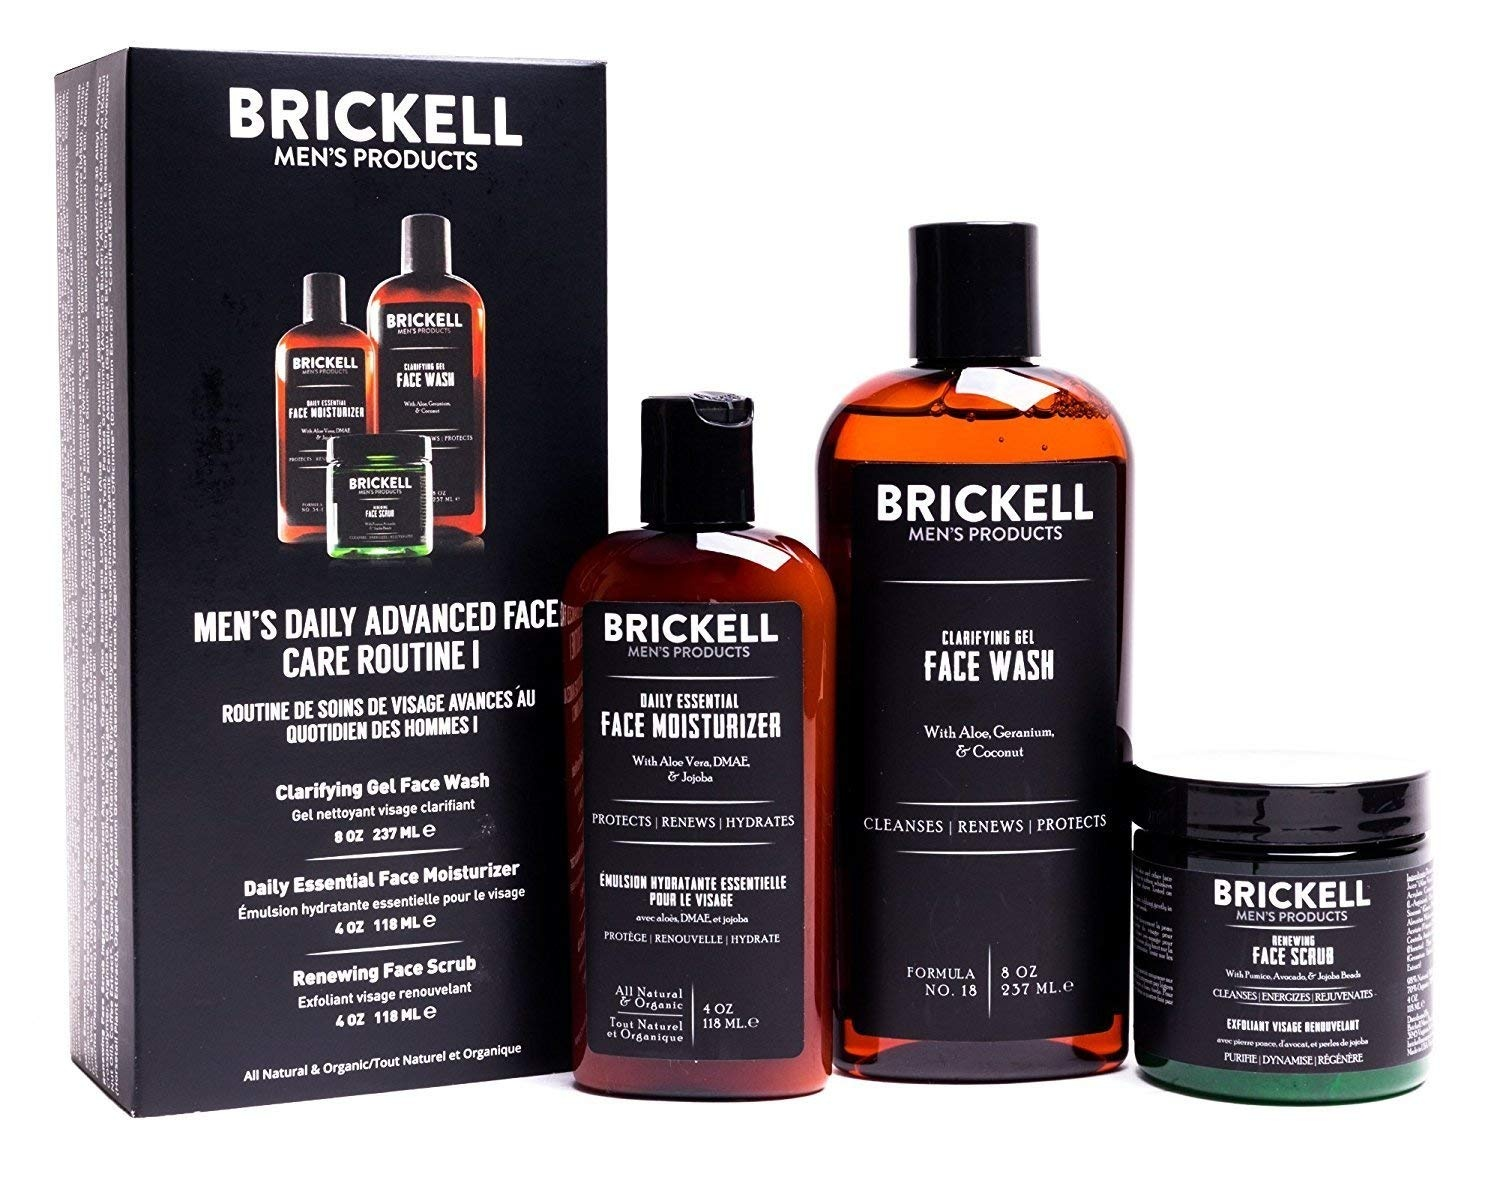 Brickell Men S Daily Advanced Face Care Routine I Gel Facial